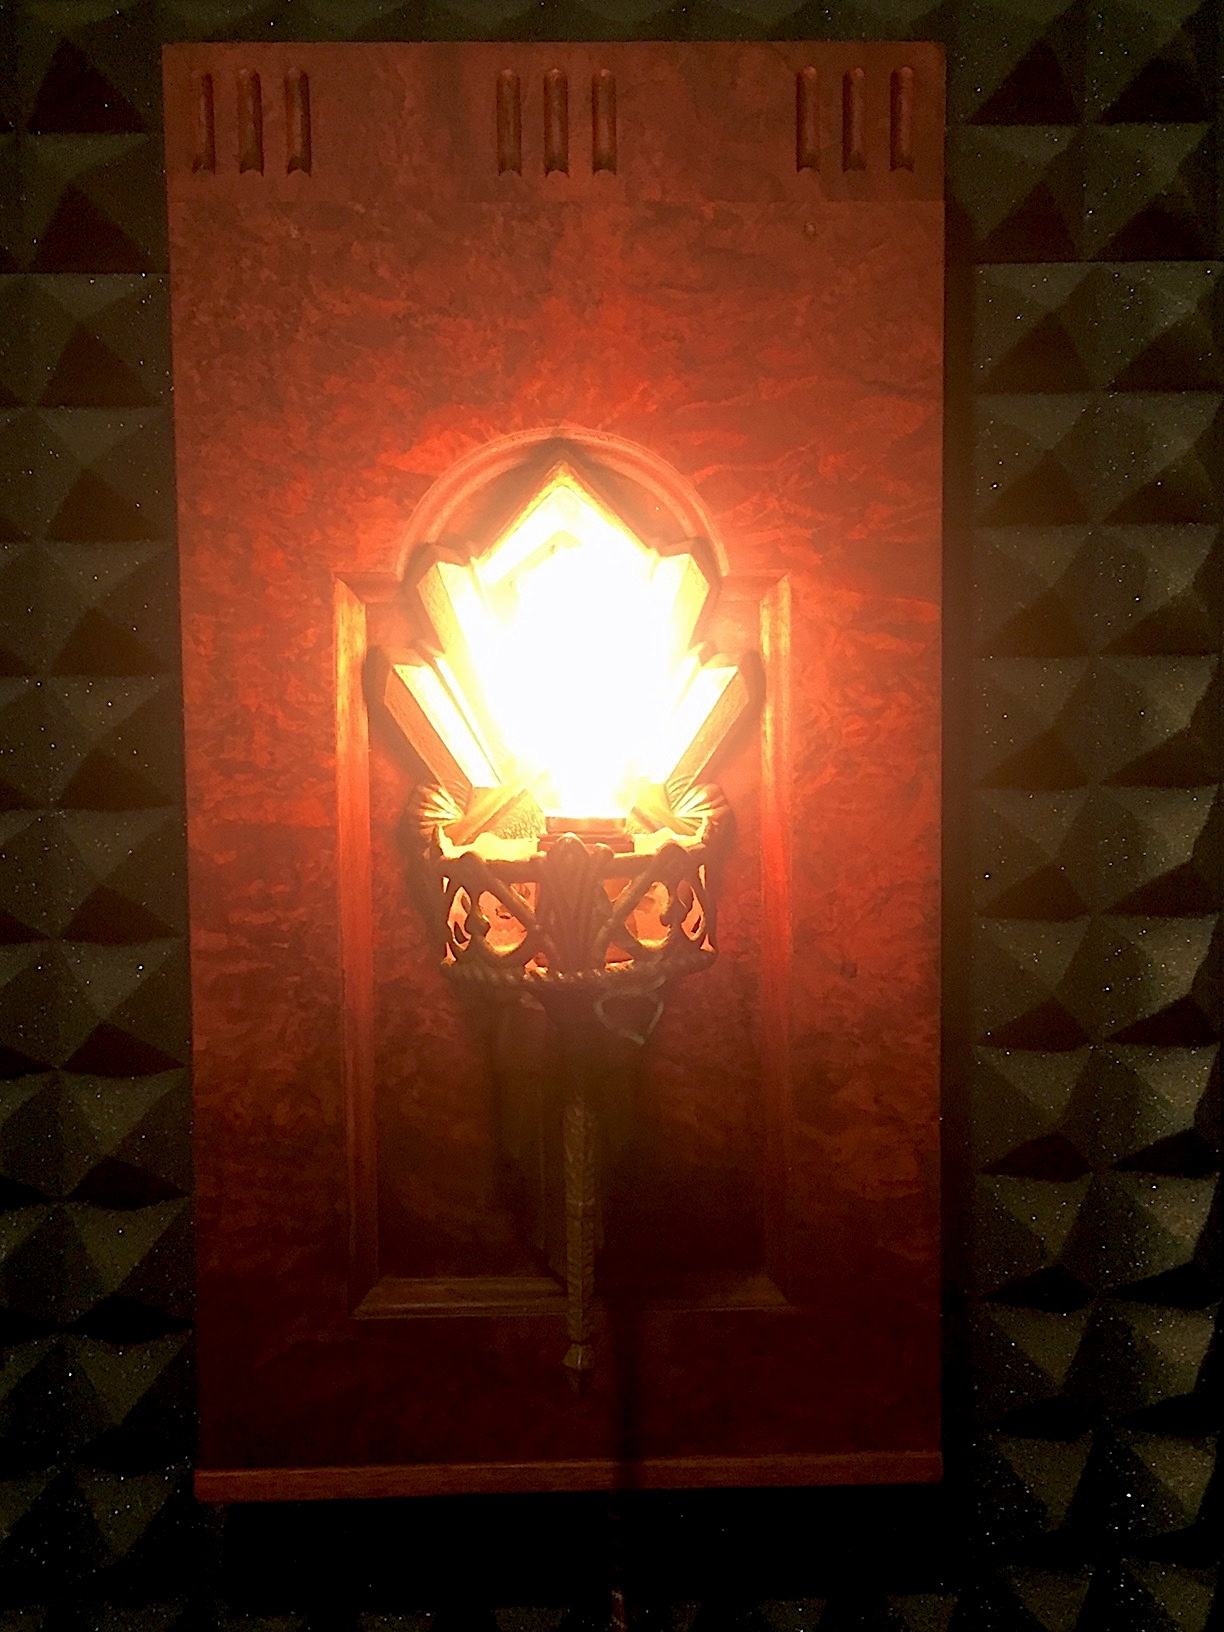 Busby's Lamp